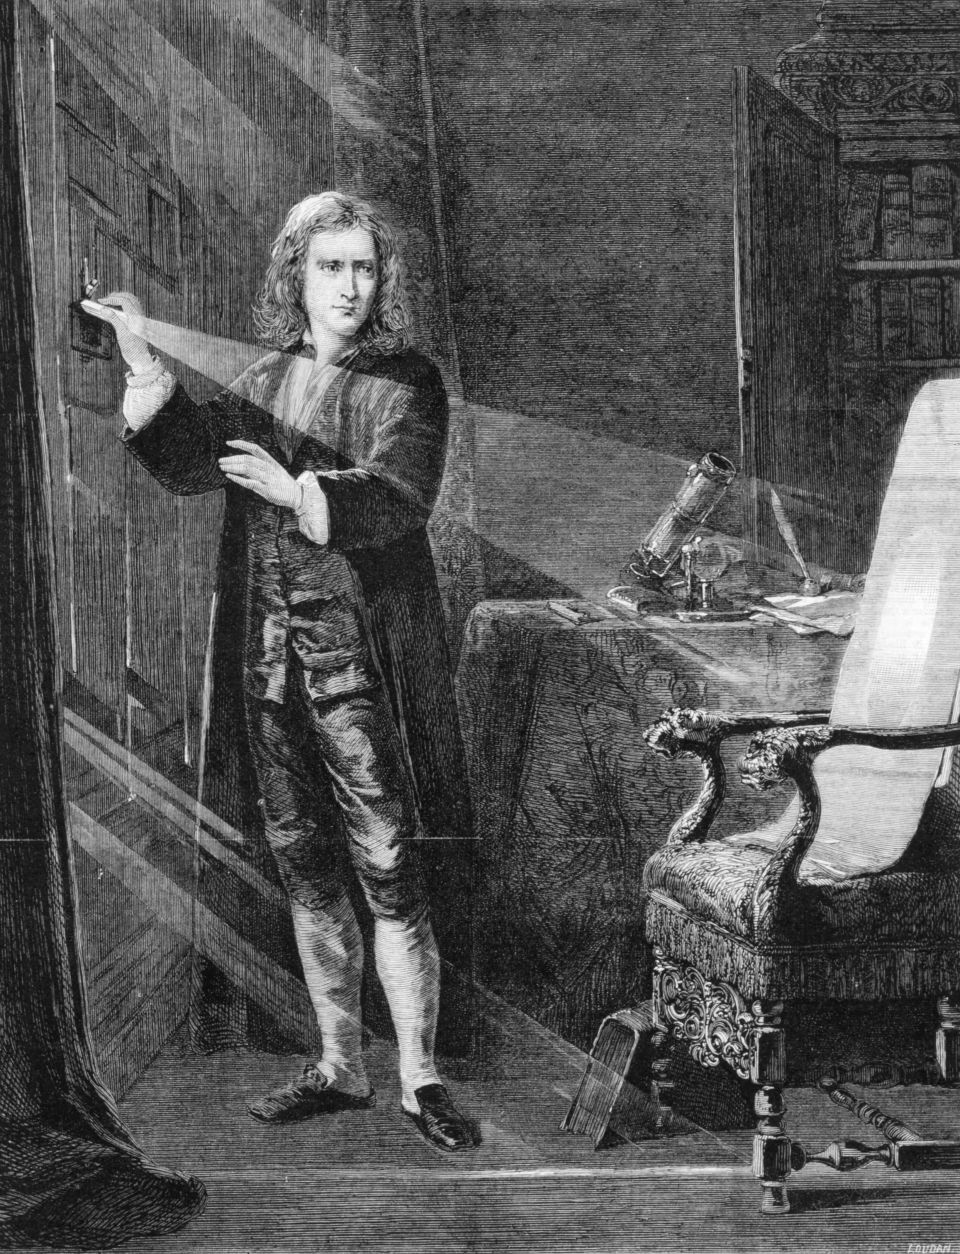 A portrait of Newton investigating light by J A Houston, circa 1879.